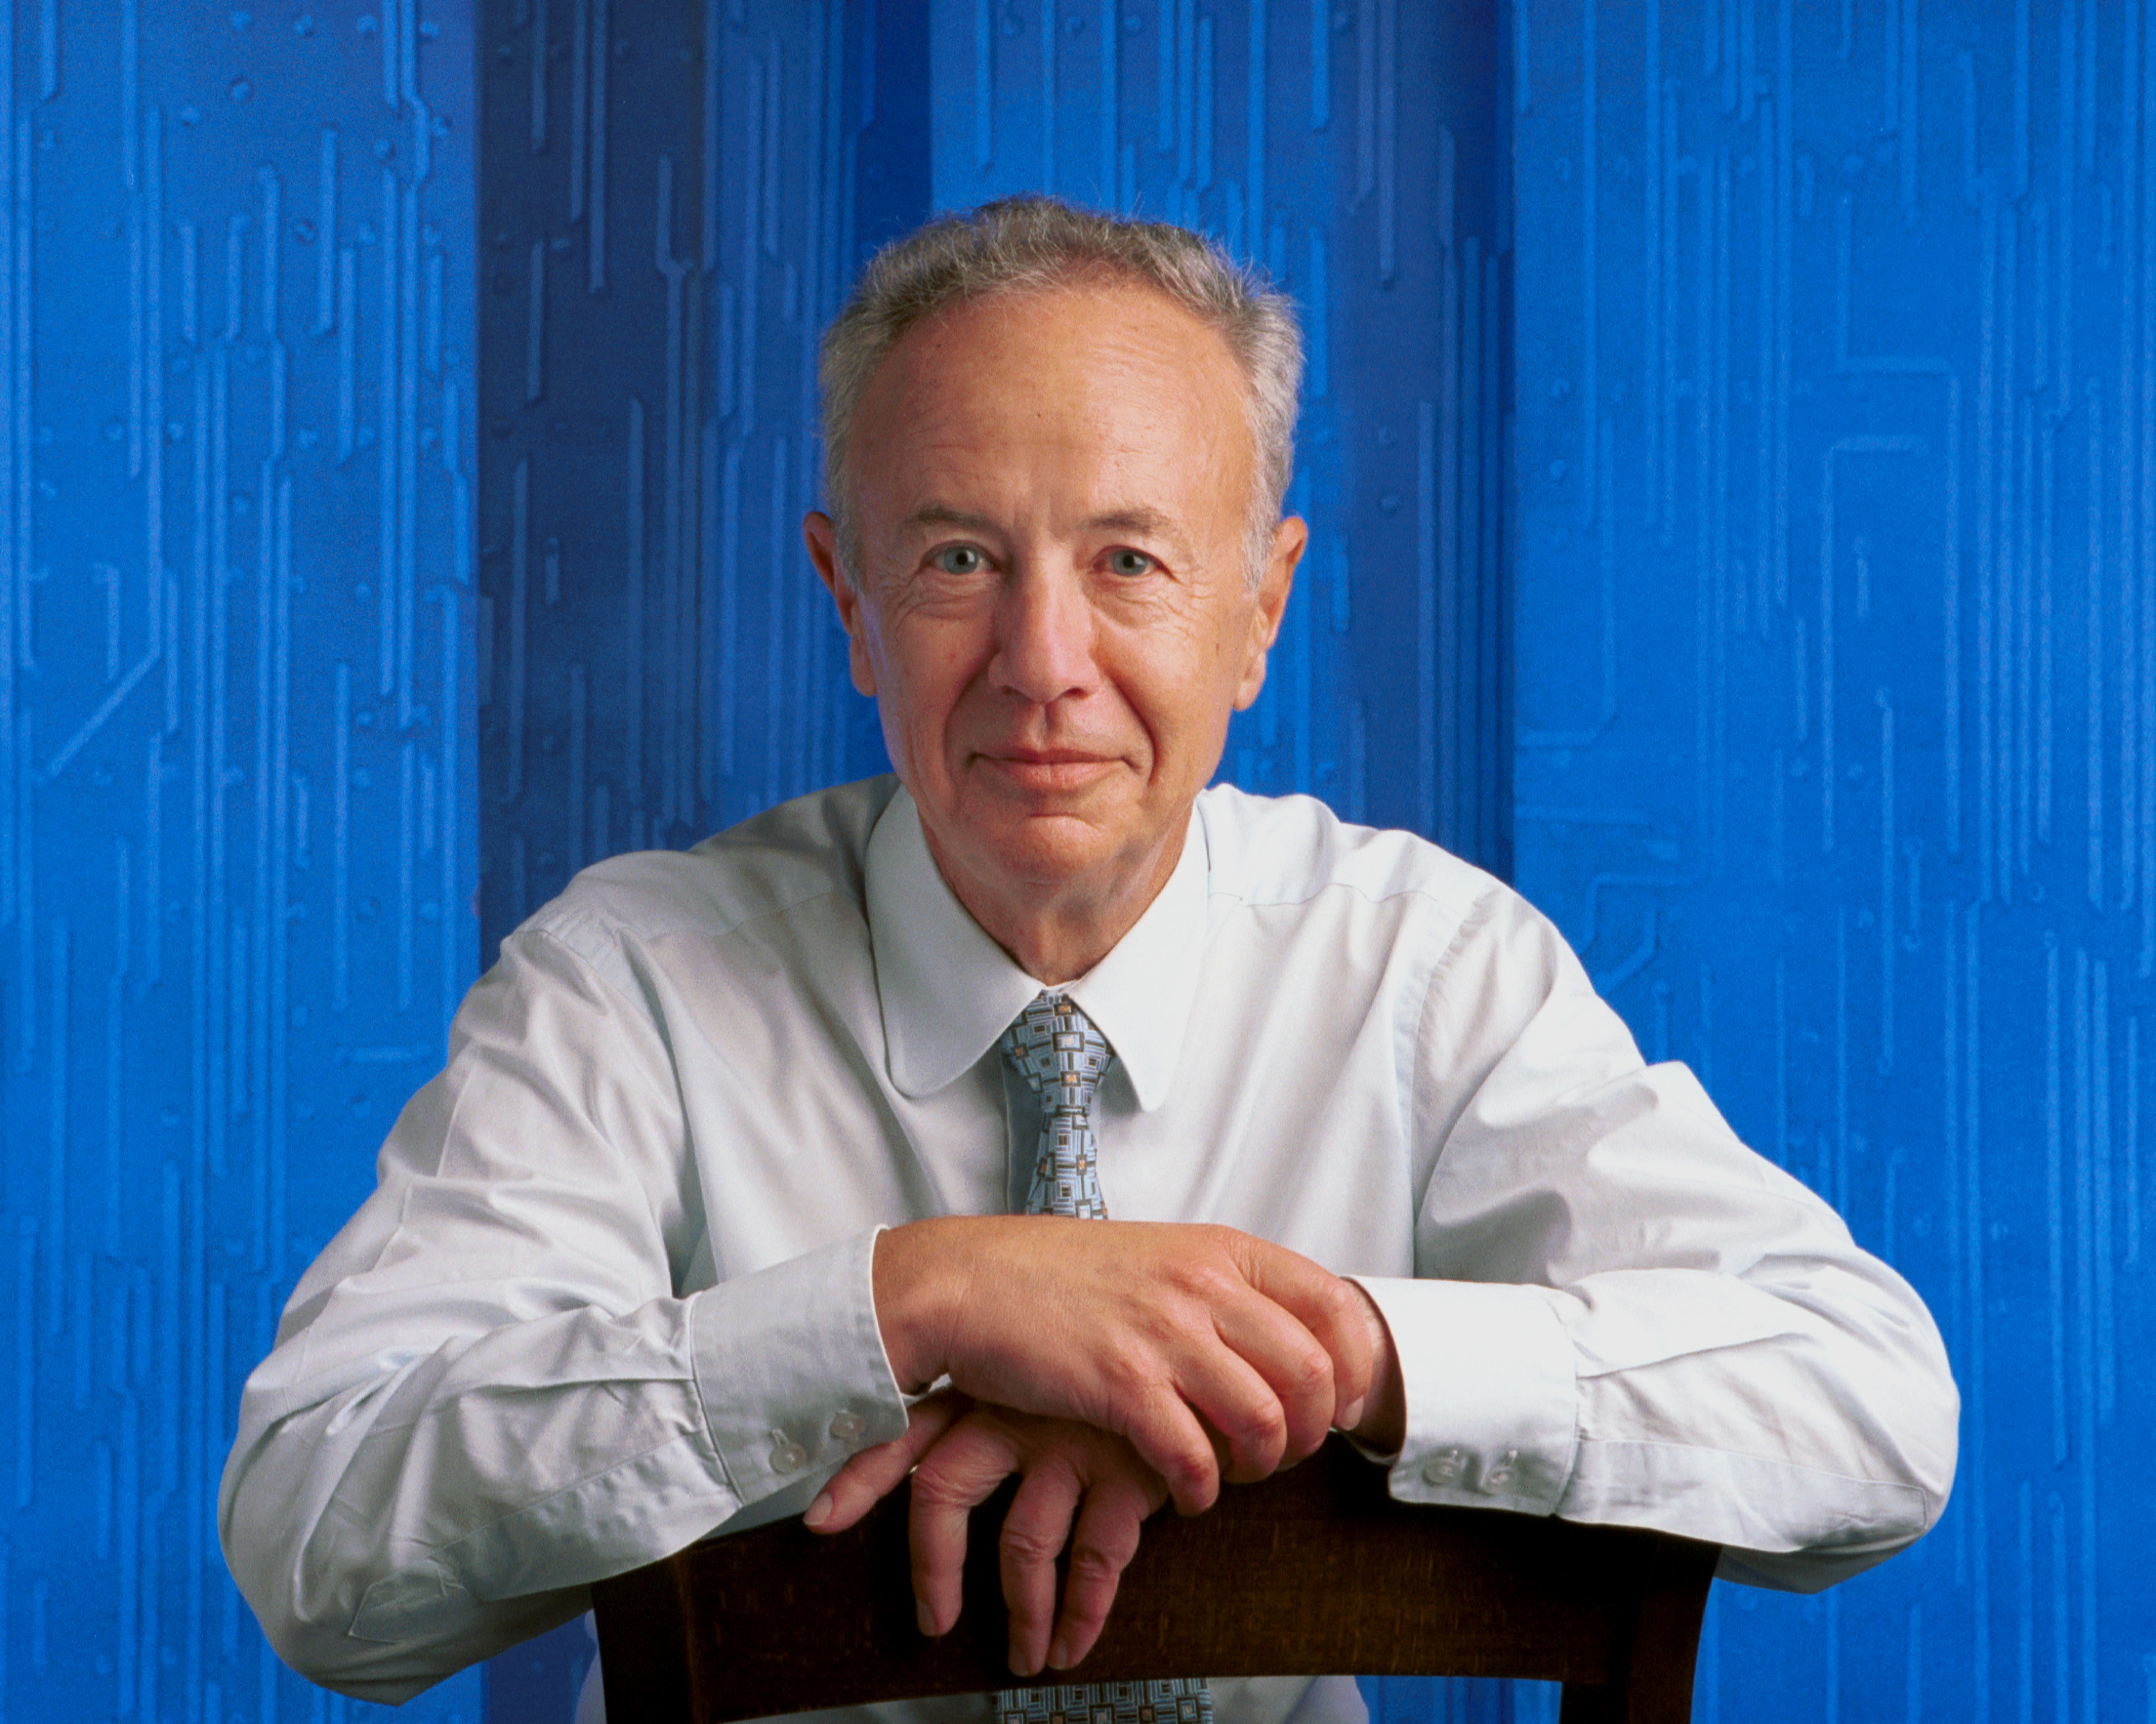 Ceo Of The Intel Corporation Andy Grove Poses For A Portrait June, 2000 In Palo Alto, California.